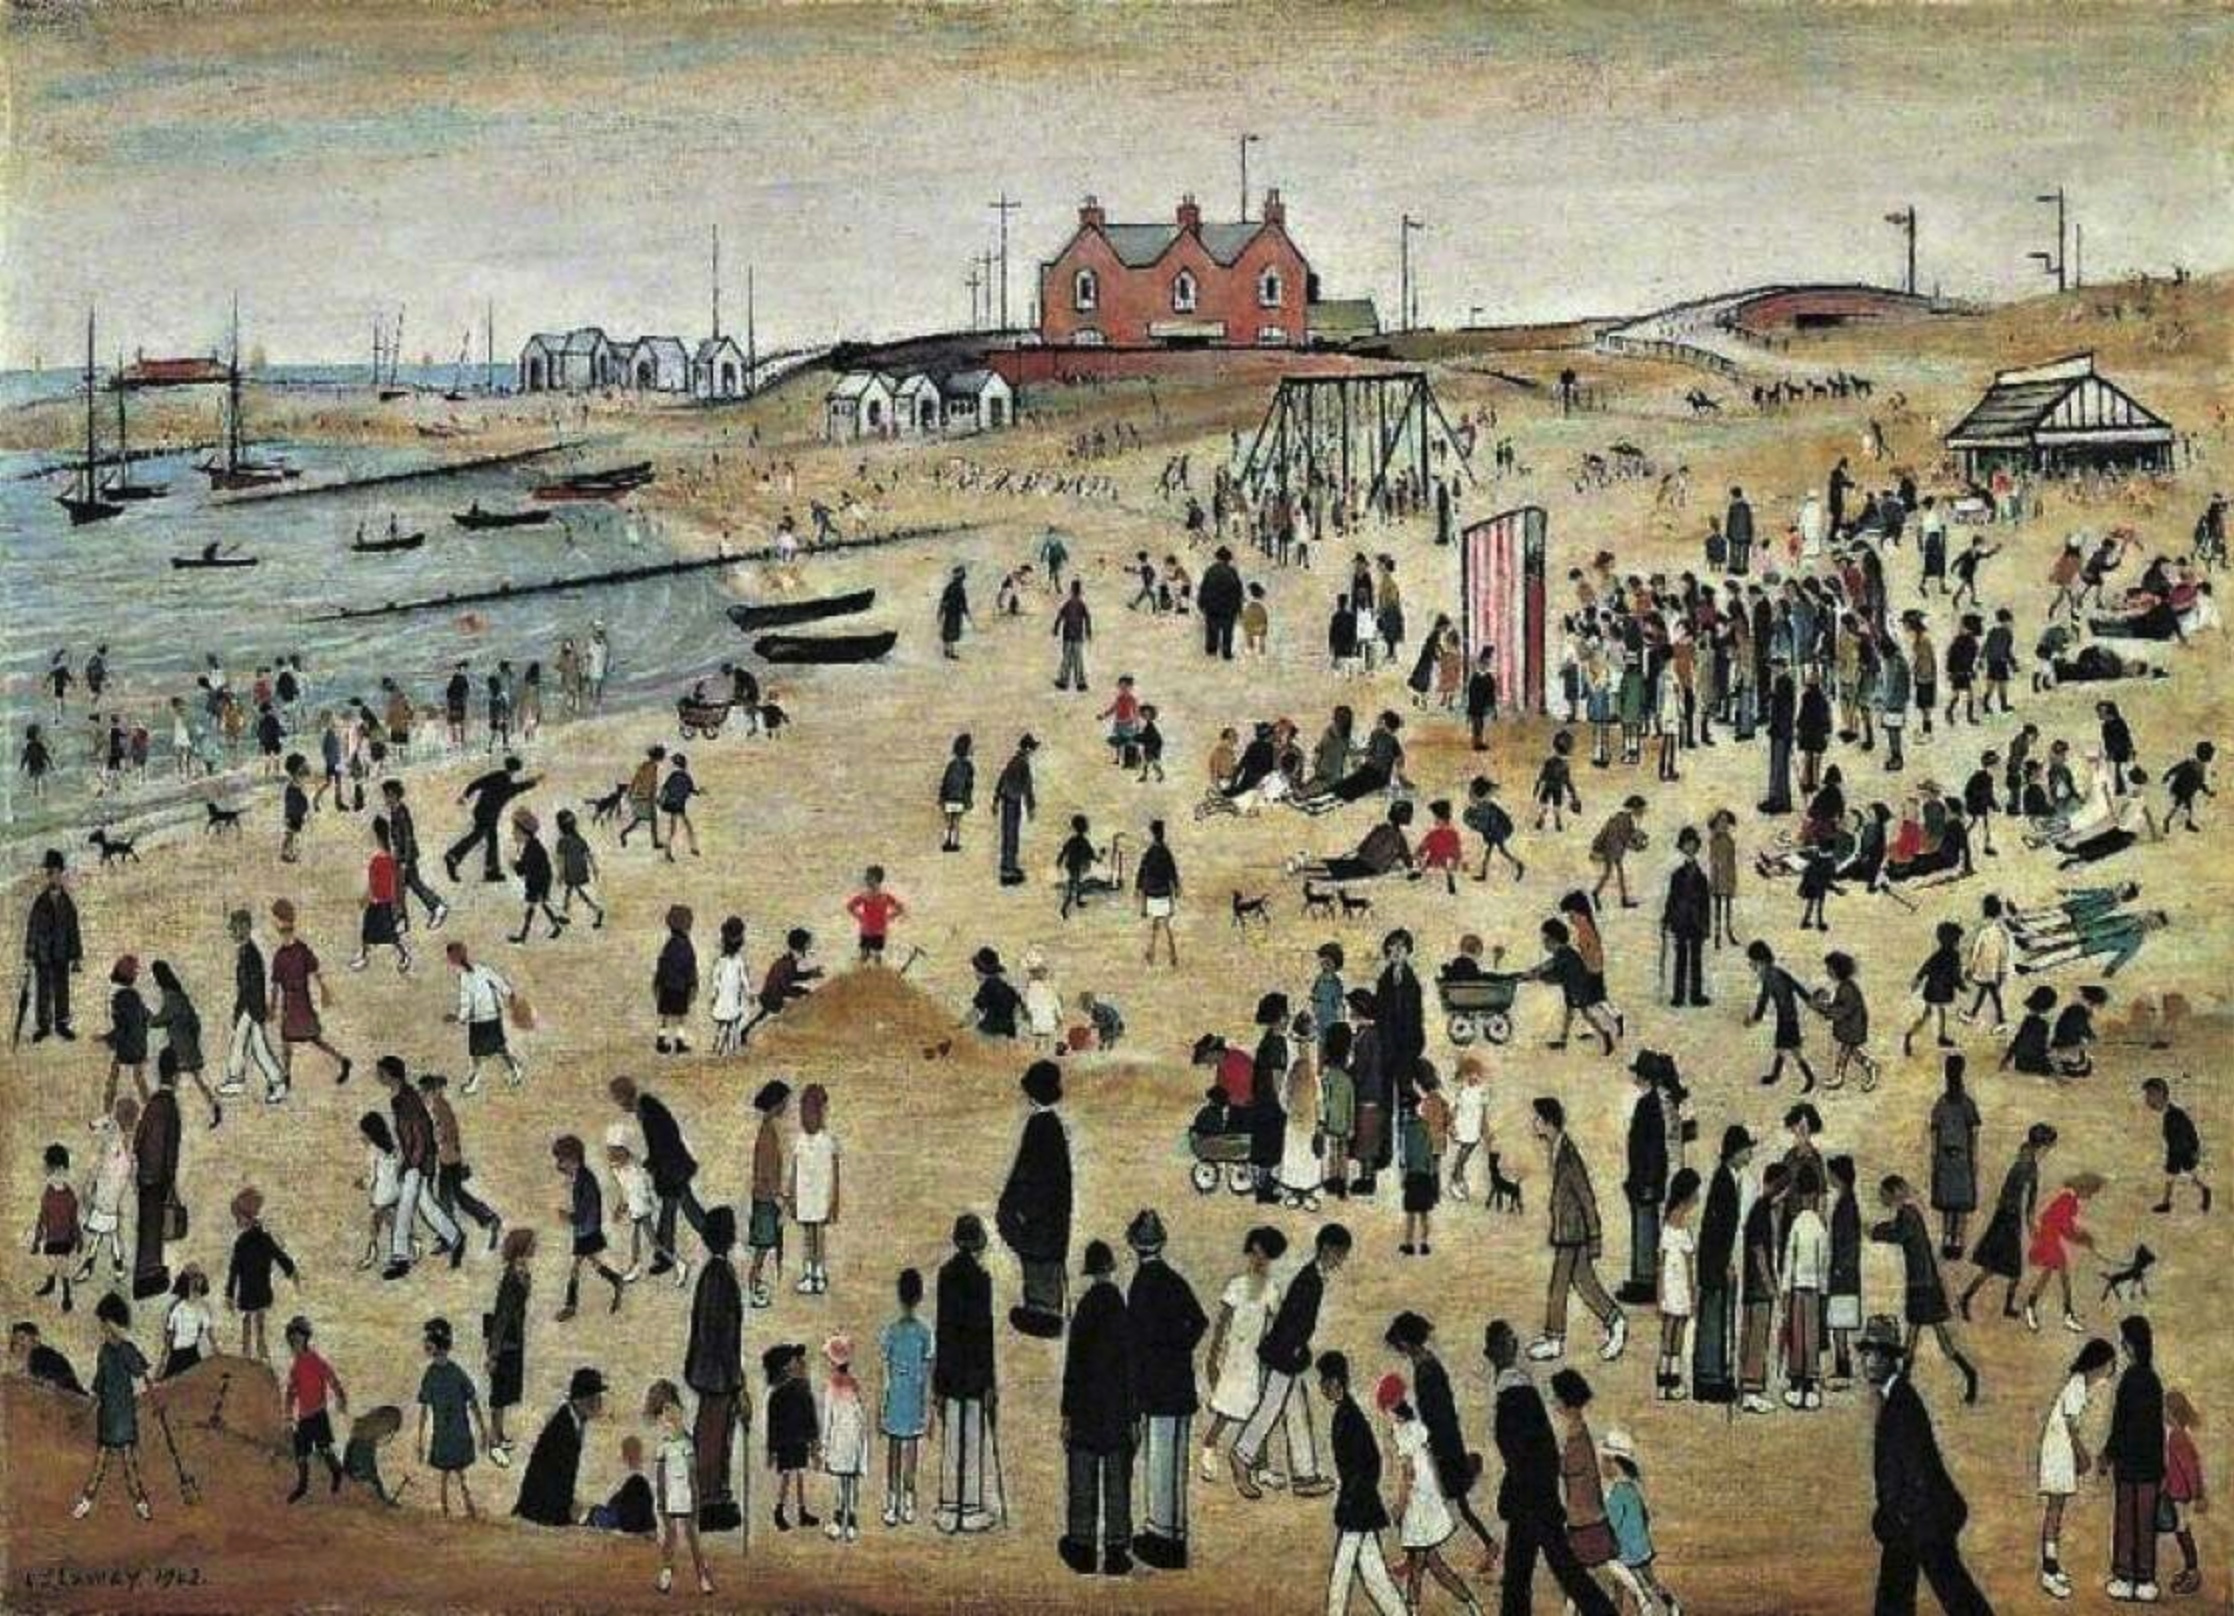 July, The Seaside (1943) by Laurence Stephen Lowry (1887 - 1976), English artist.